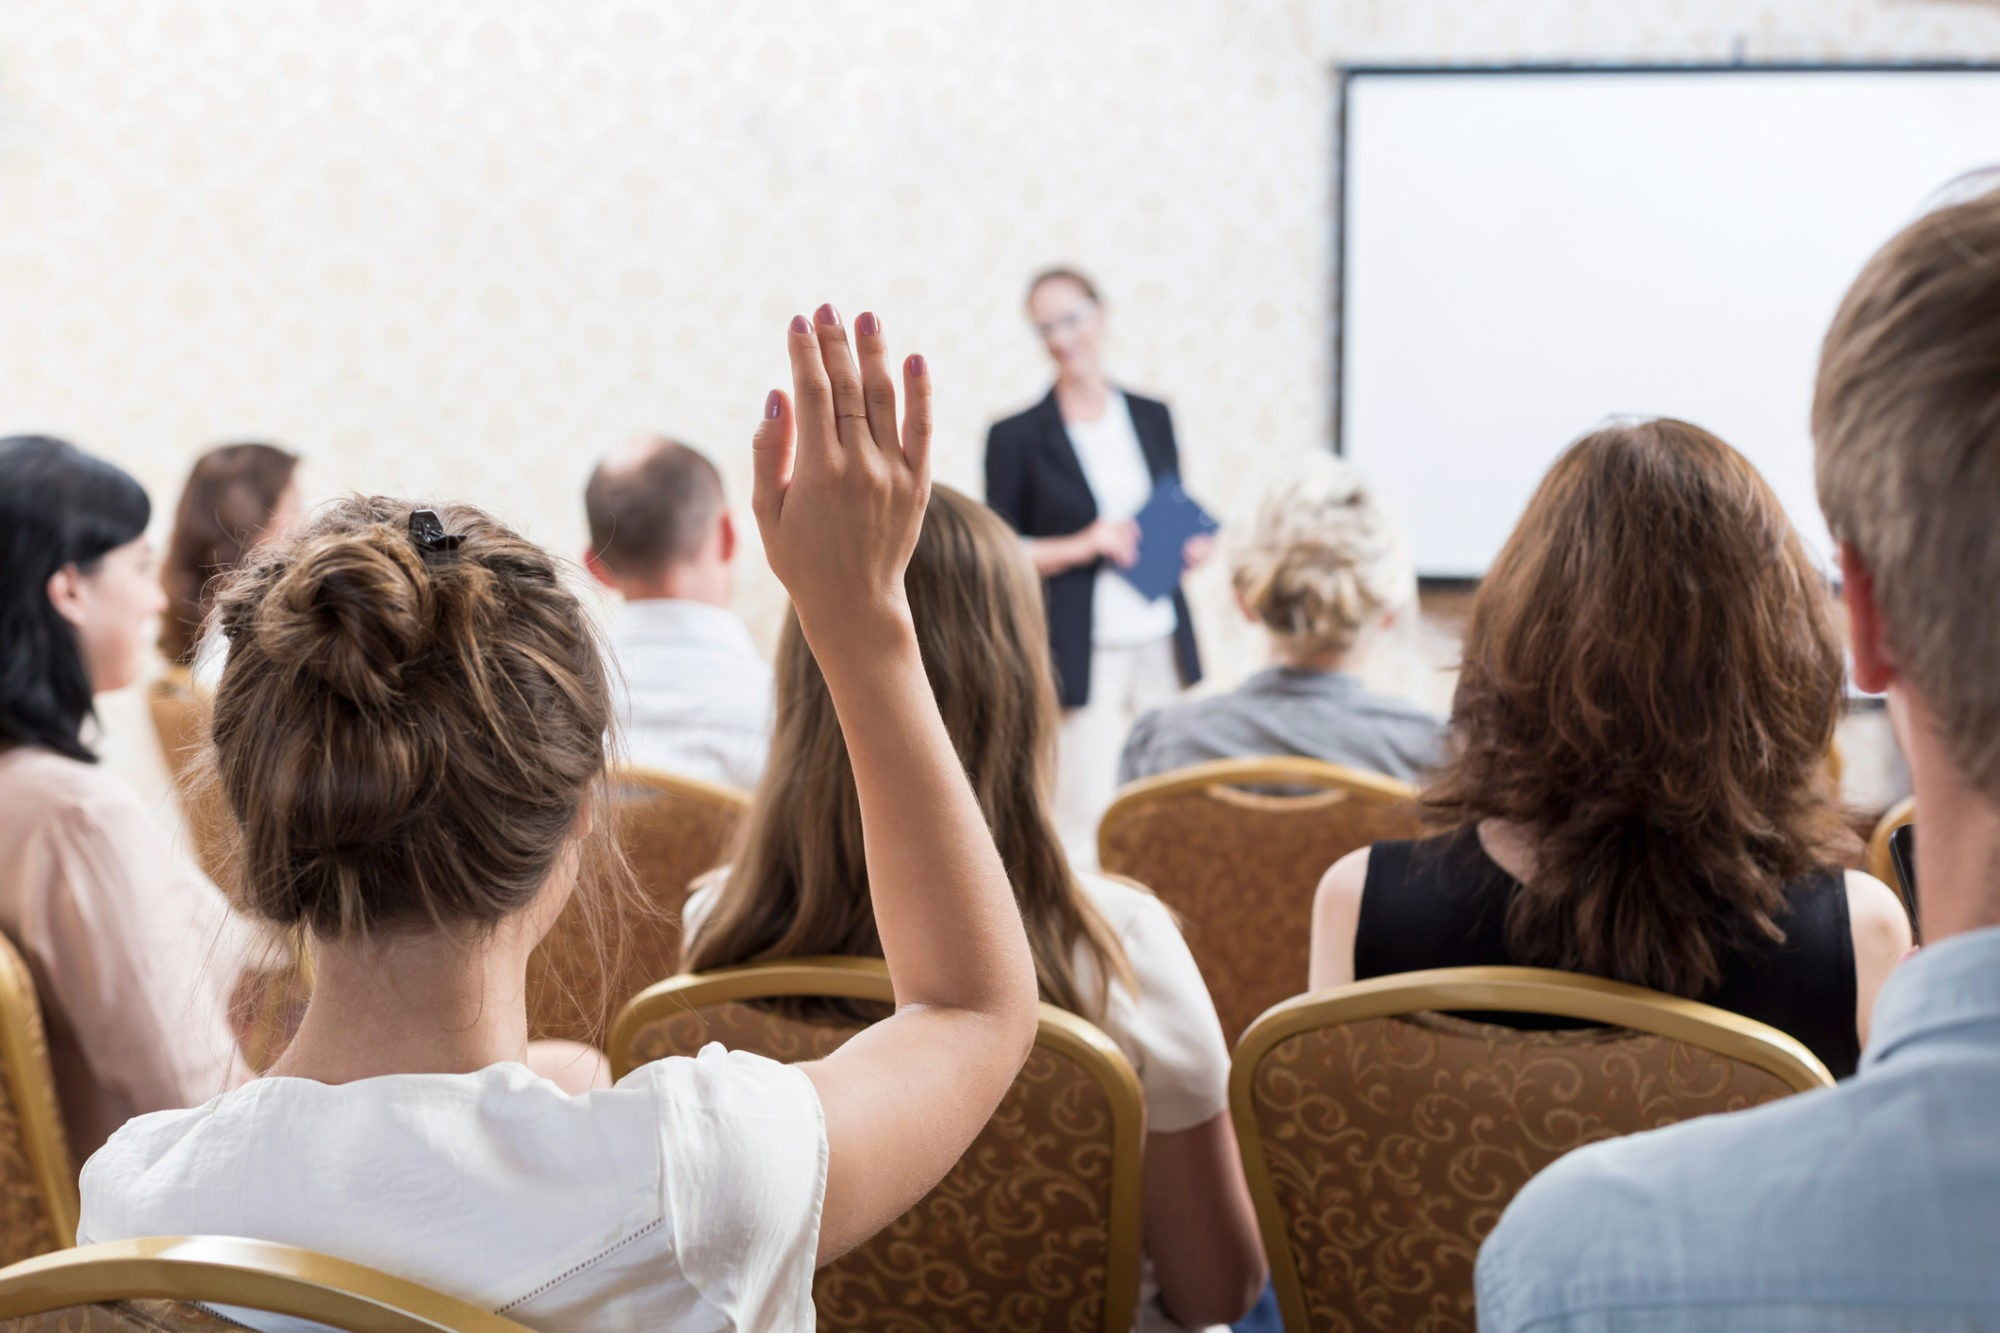 Photo of listener raising hand to ask question during seminar